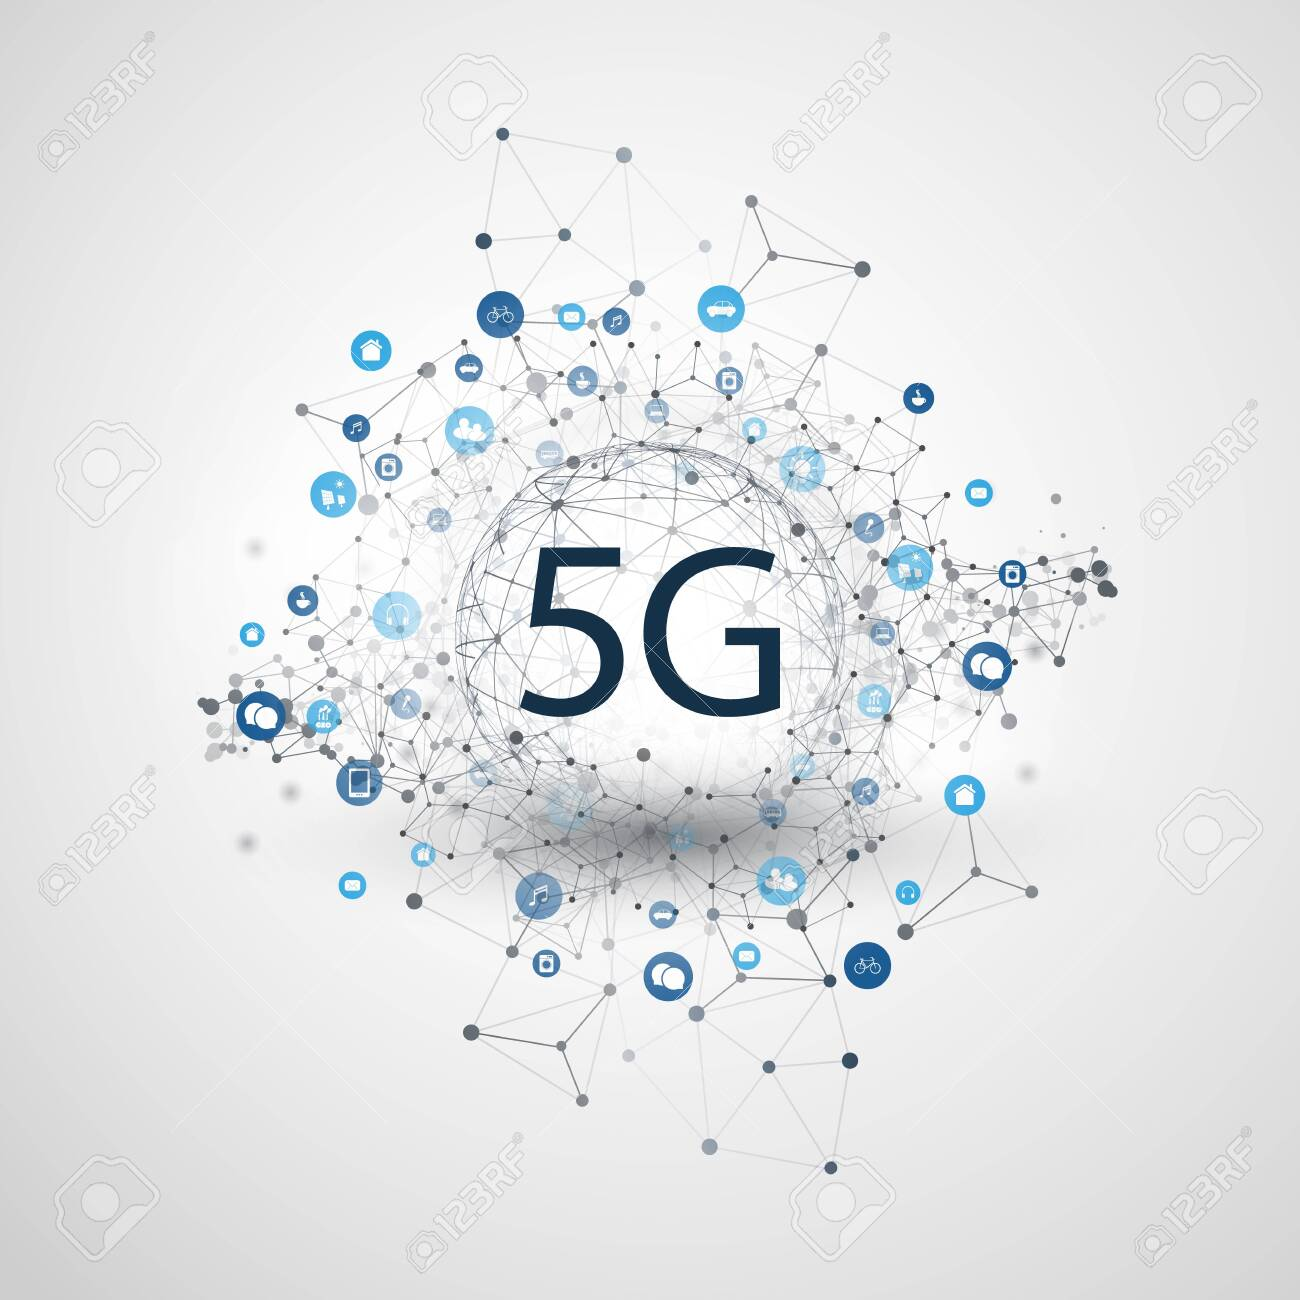 5G Network Label with Wireframe Sphere, Mesh and Icons -Abstract Futuristic High Speed, Broadband Mobile Telecommunication and Wireless Internet Design Concept - 140207138